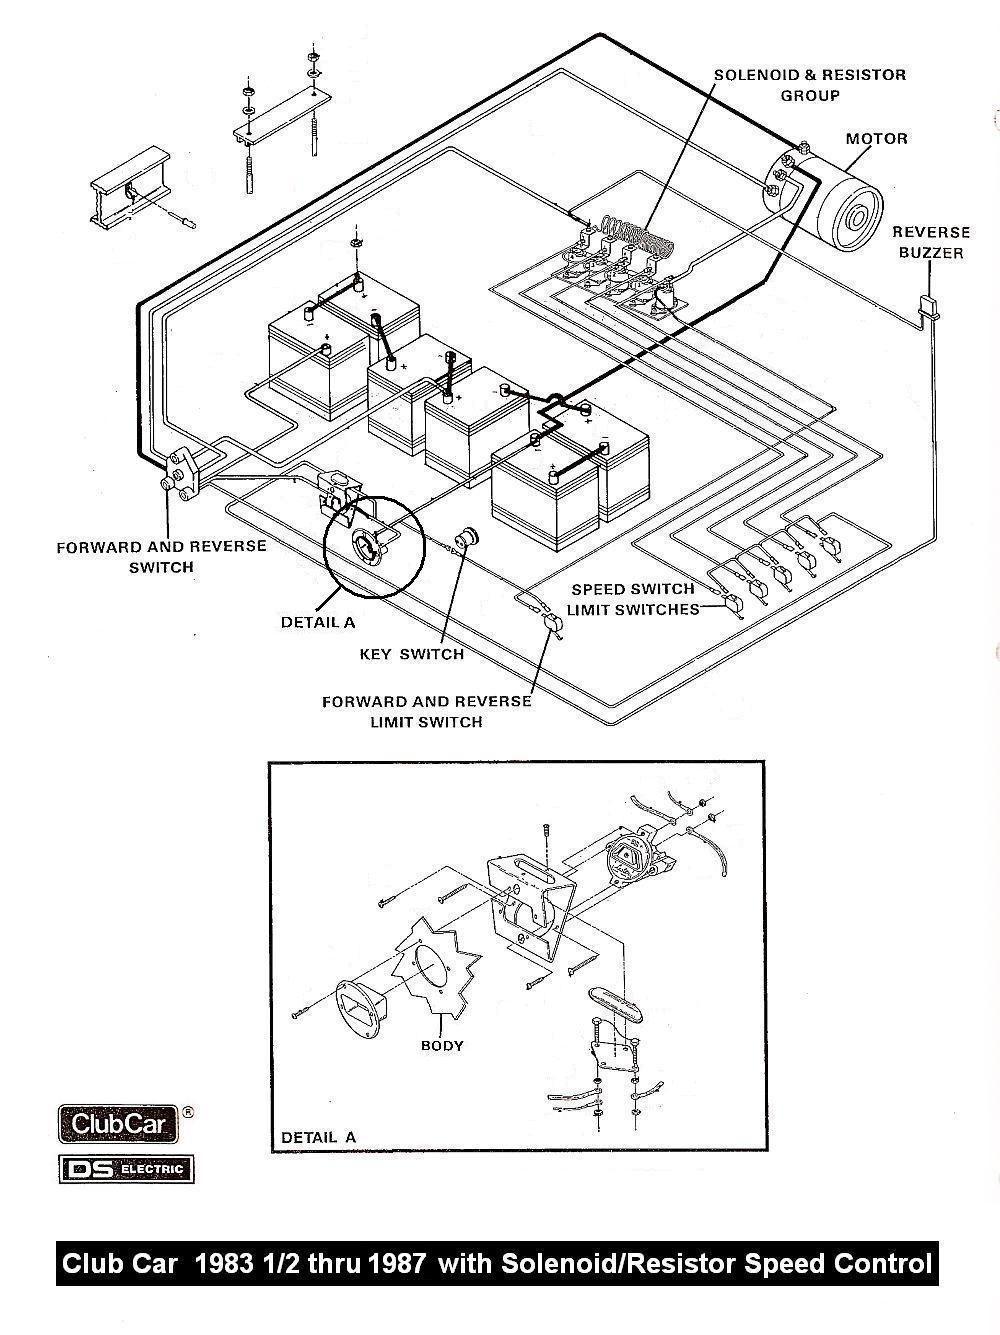 Pin by Diagram BacaMajalah on Technical Ideas | Golf carts ... Ke Resistor Wiring Diagram on